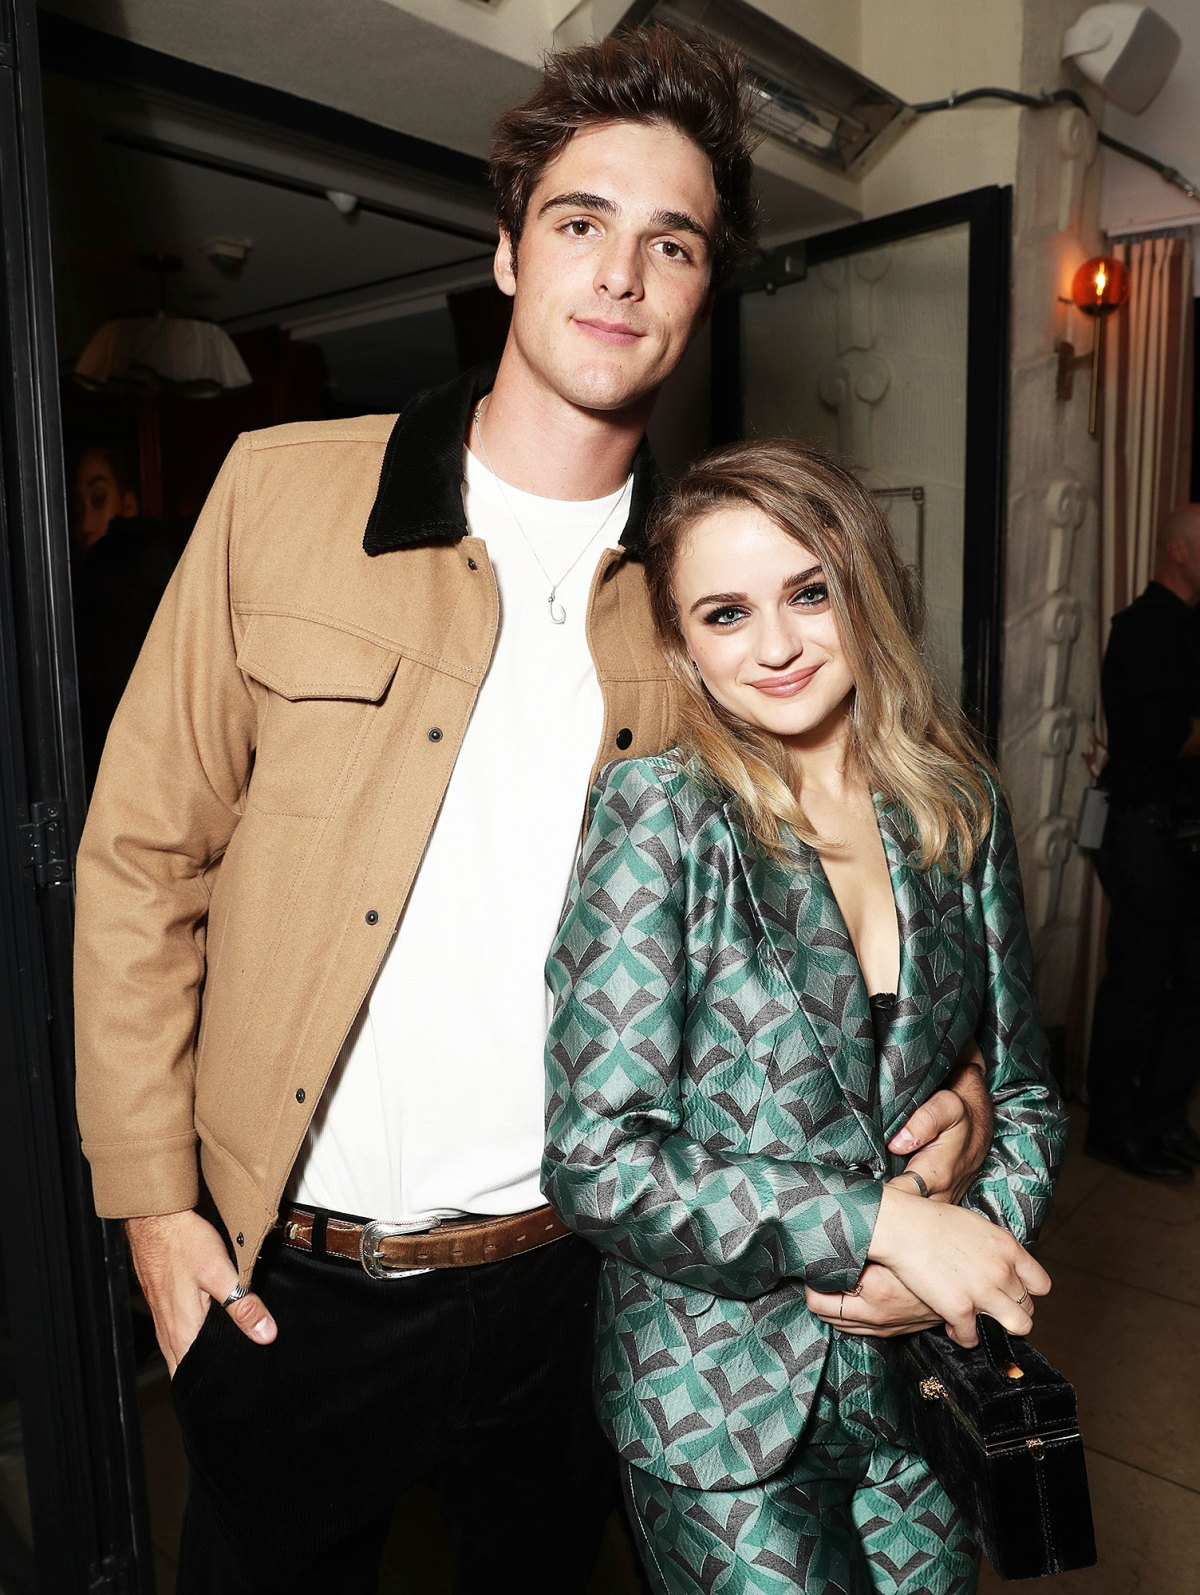 Joey King And Jacob Elordi The Way They Were Because this girl's just getting started. joey king and jacob elordi the way